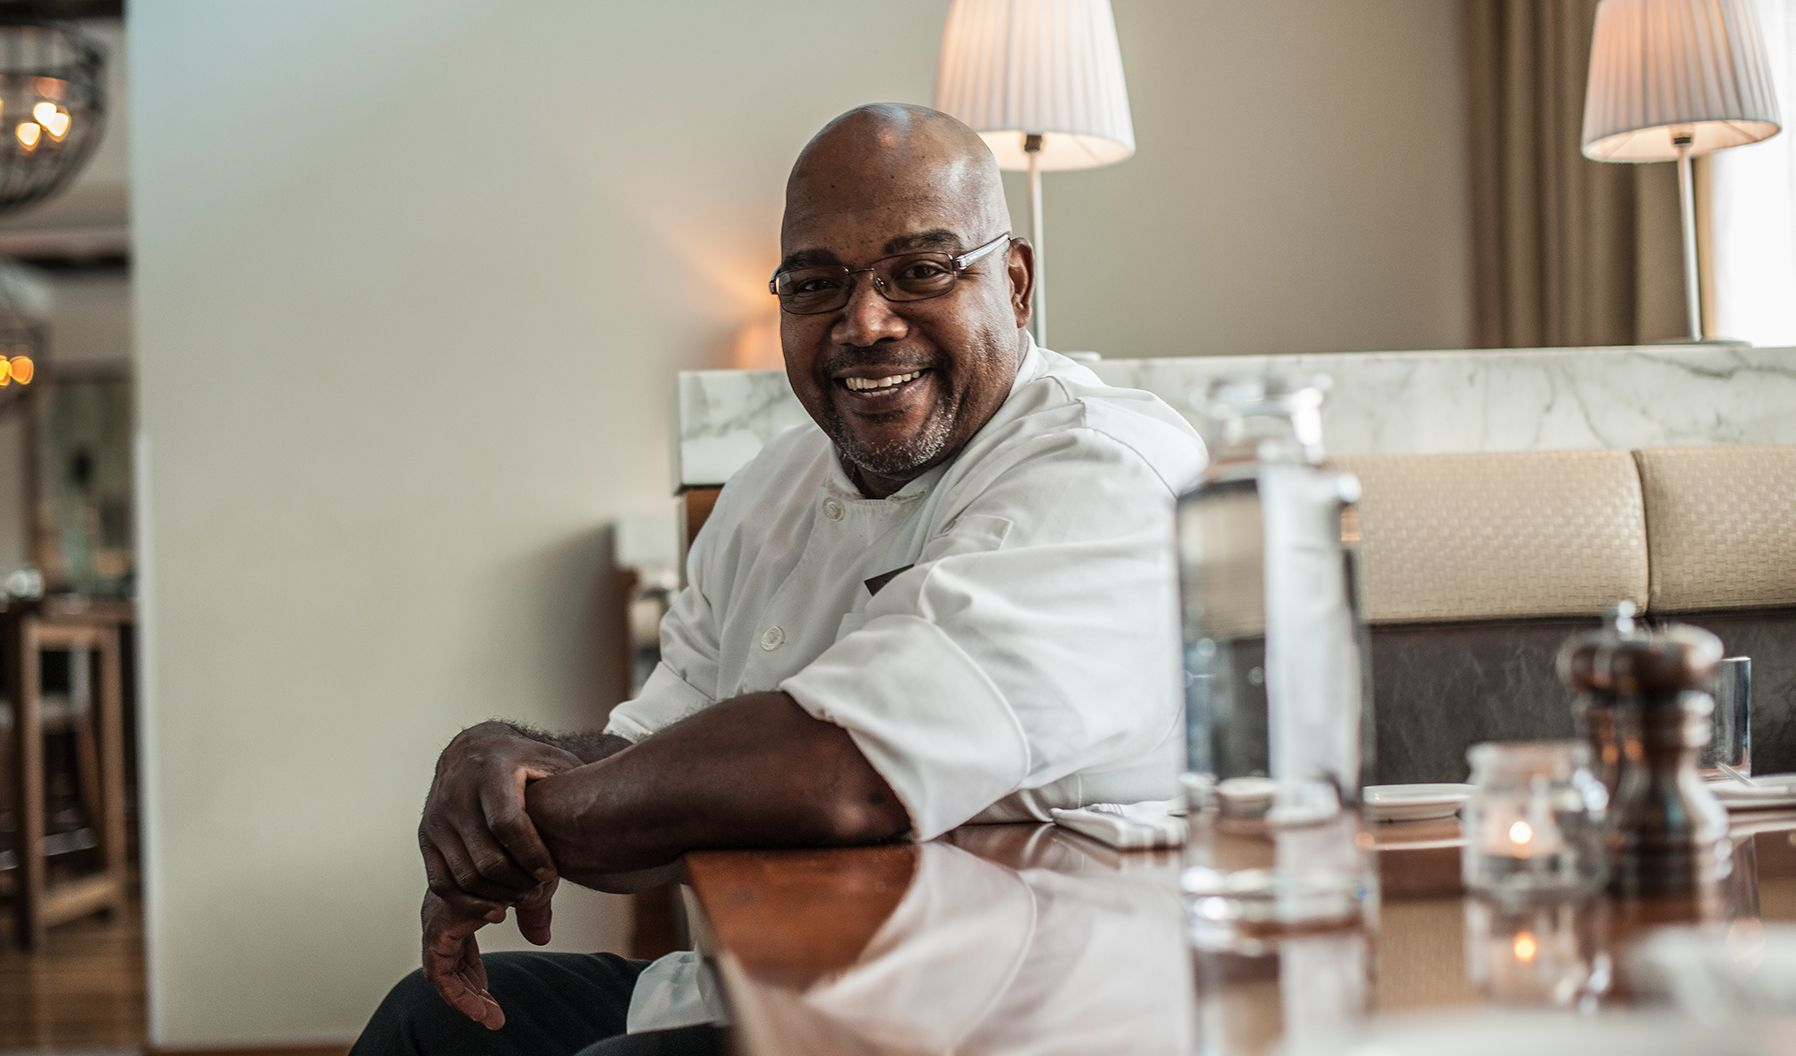 A chef smiling at the camera while sat at a restaurant booth table.